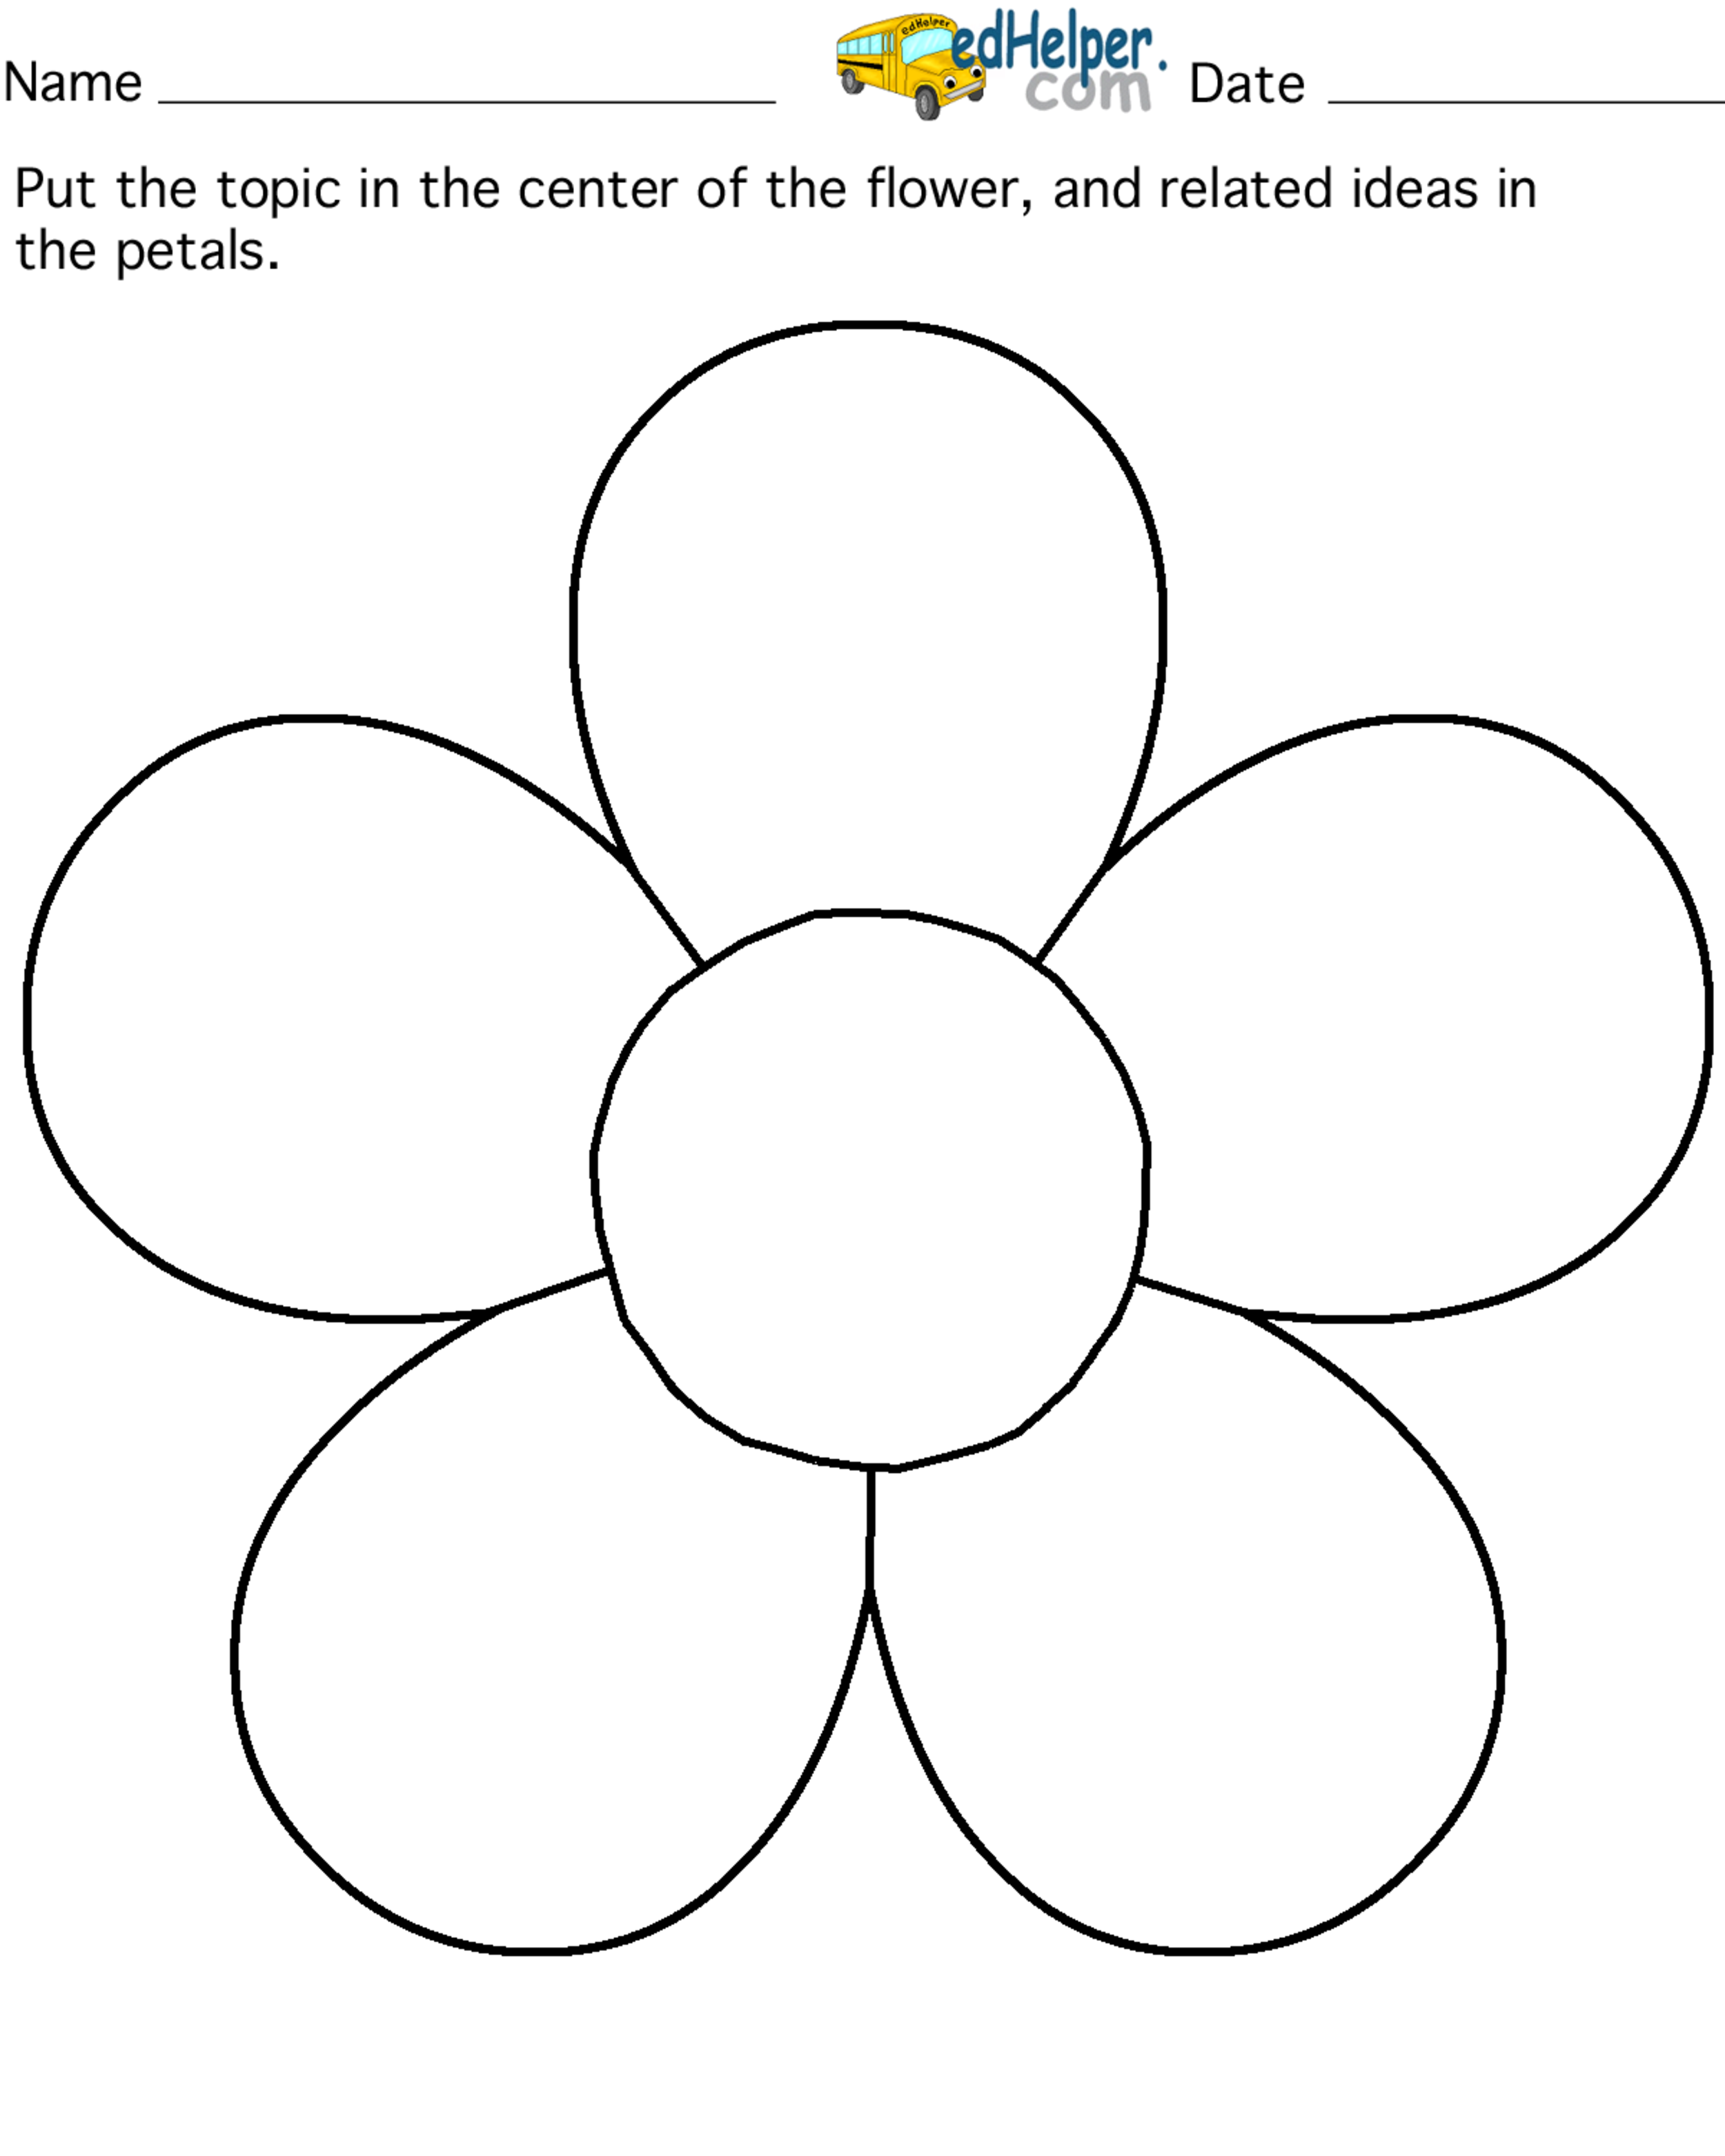 Petal clipart simple flower #3.